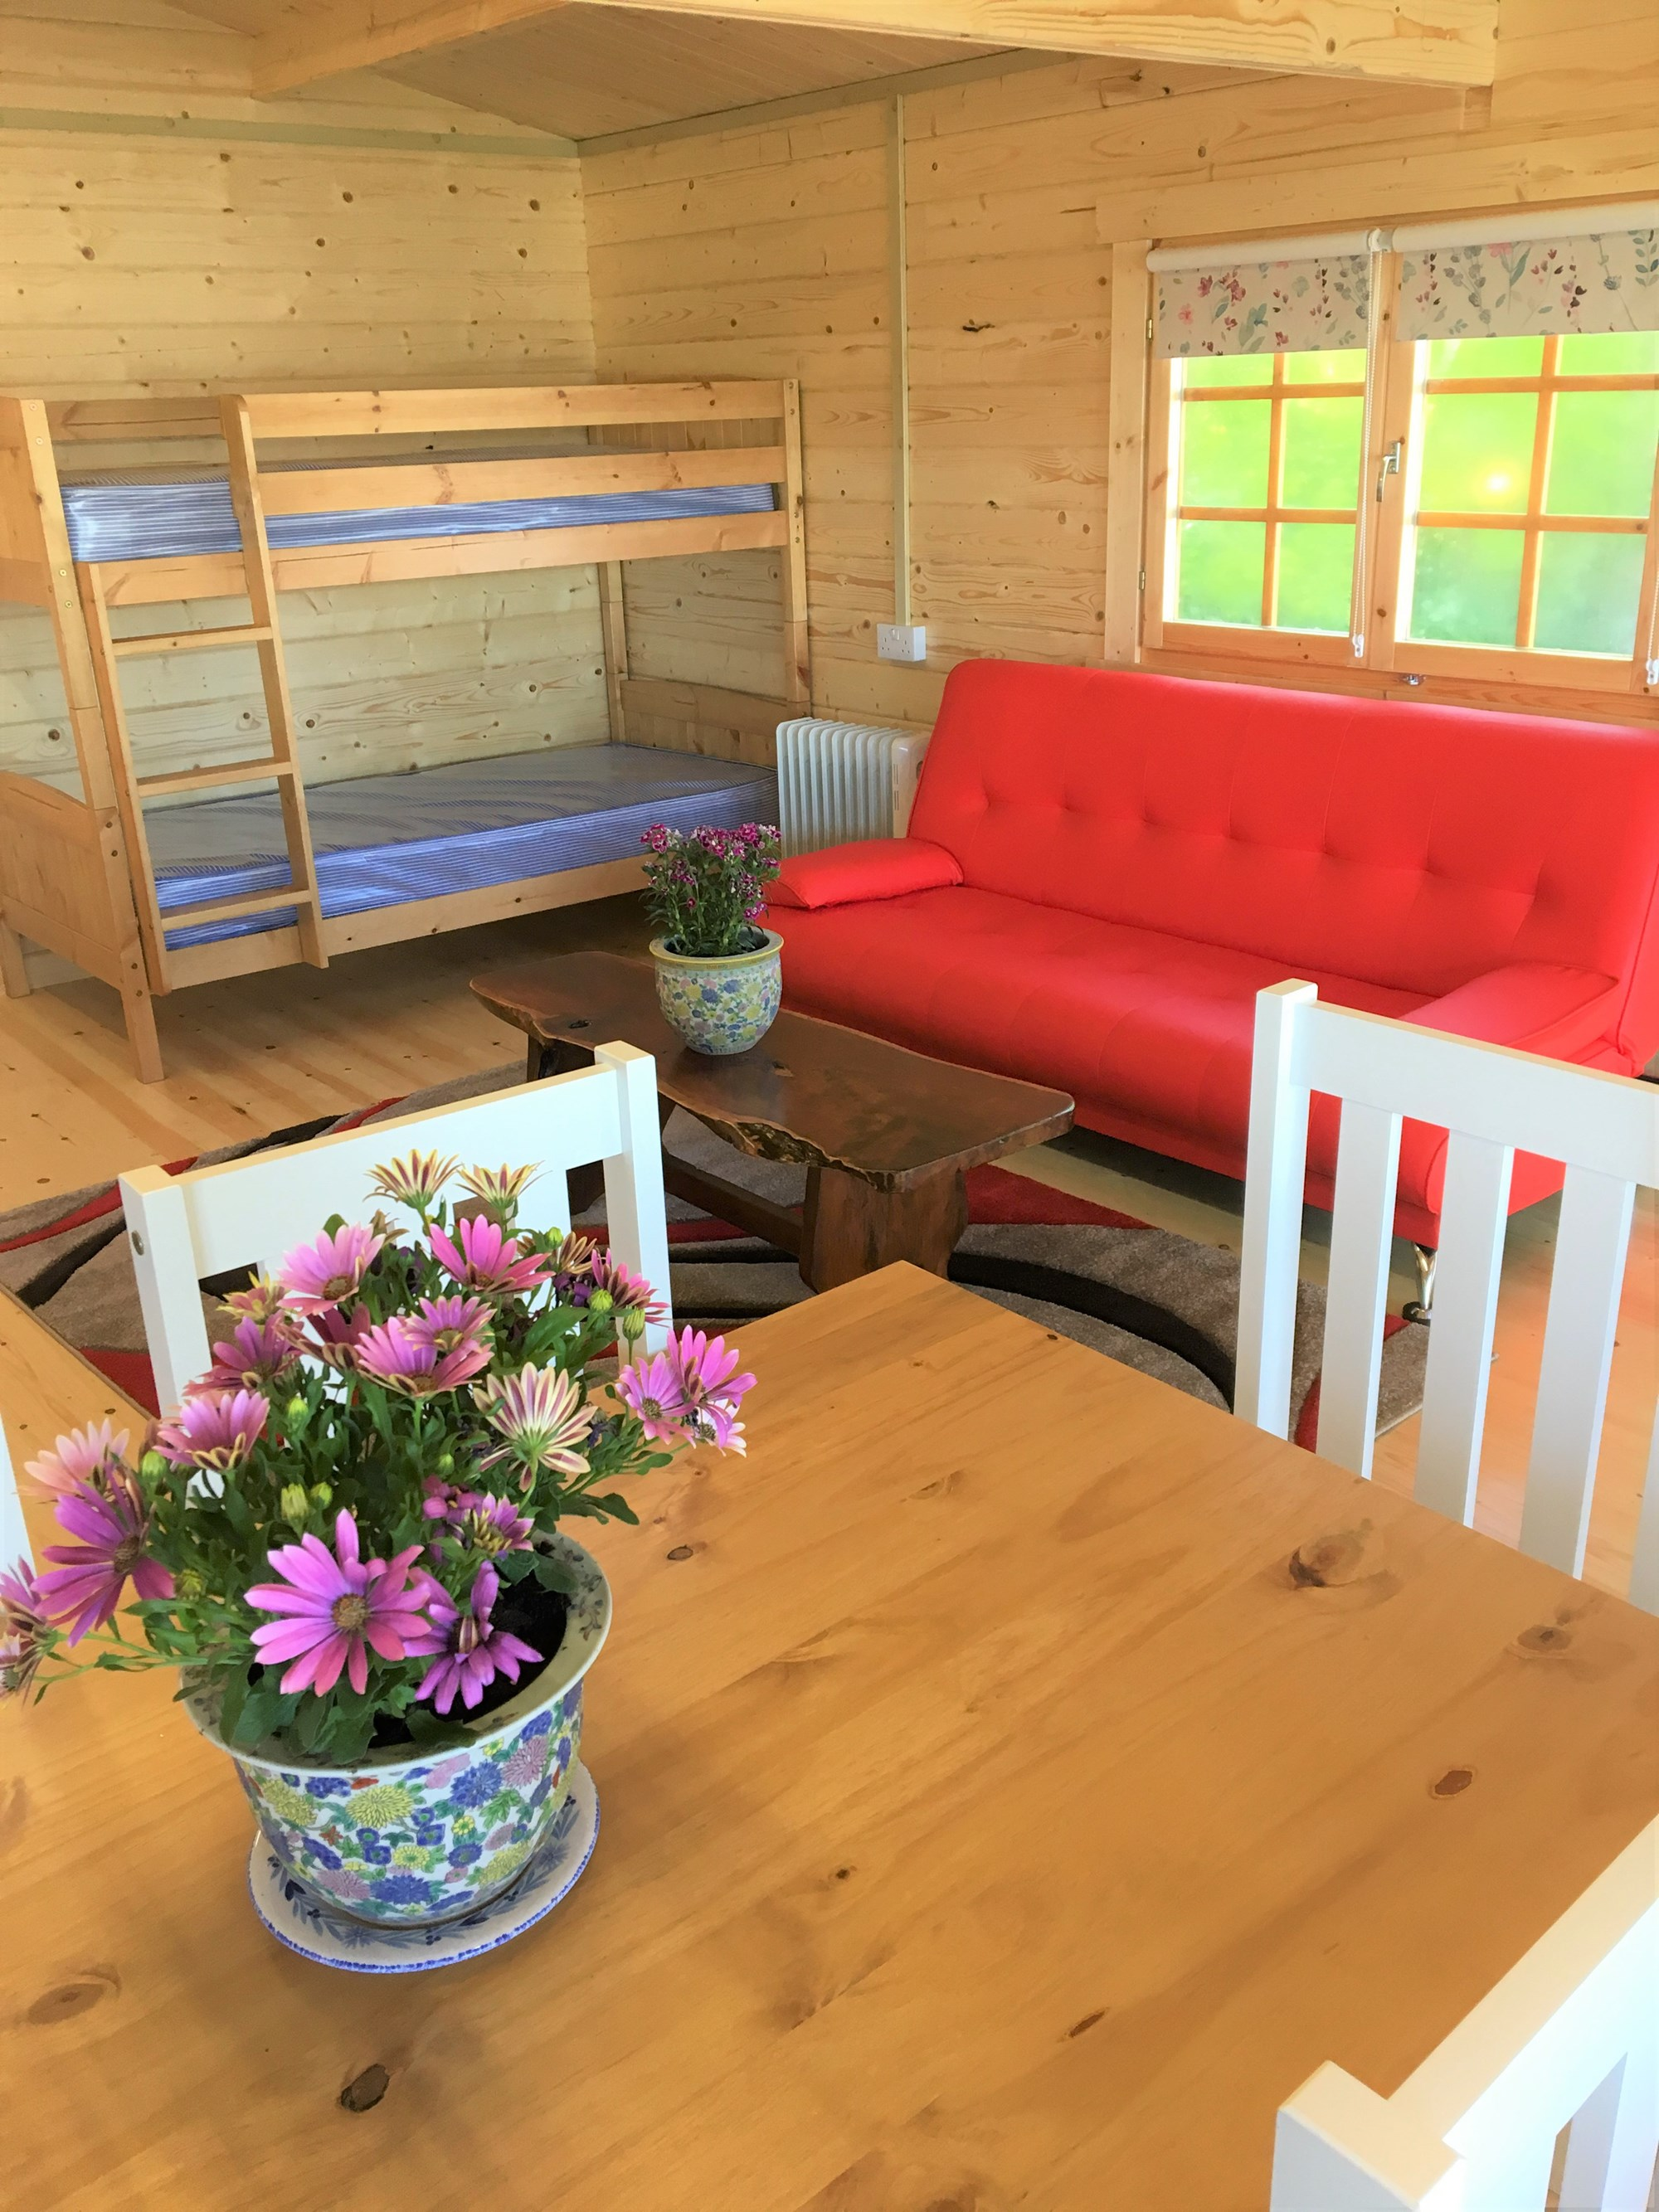 Inside Woodpecker-bunk beds, sofa bed, table and chairs for 6